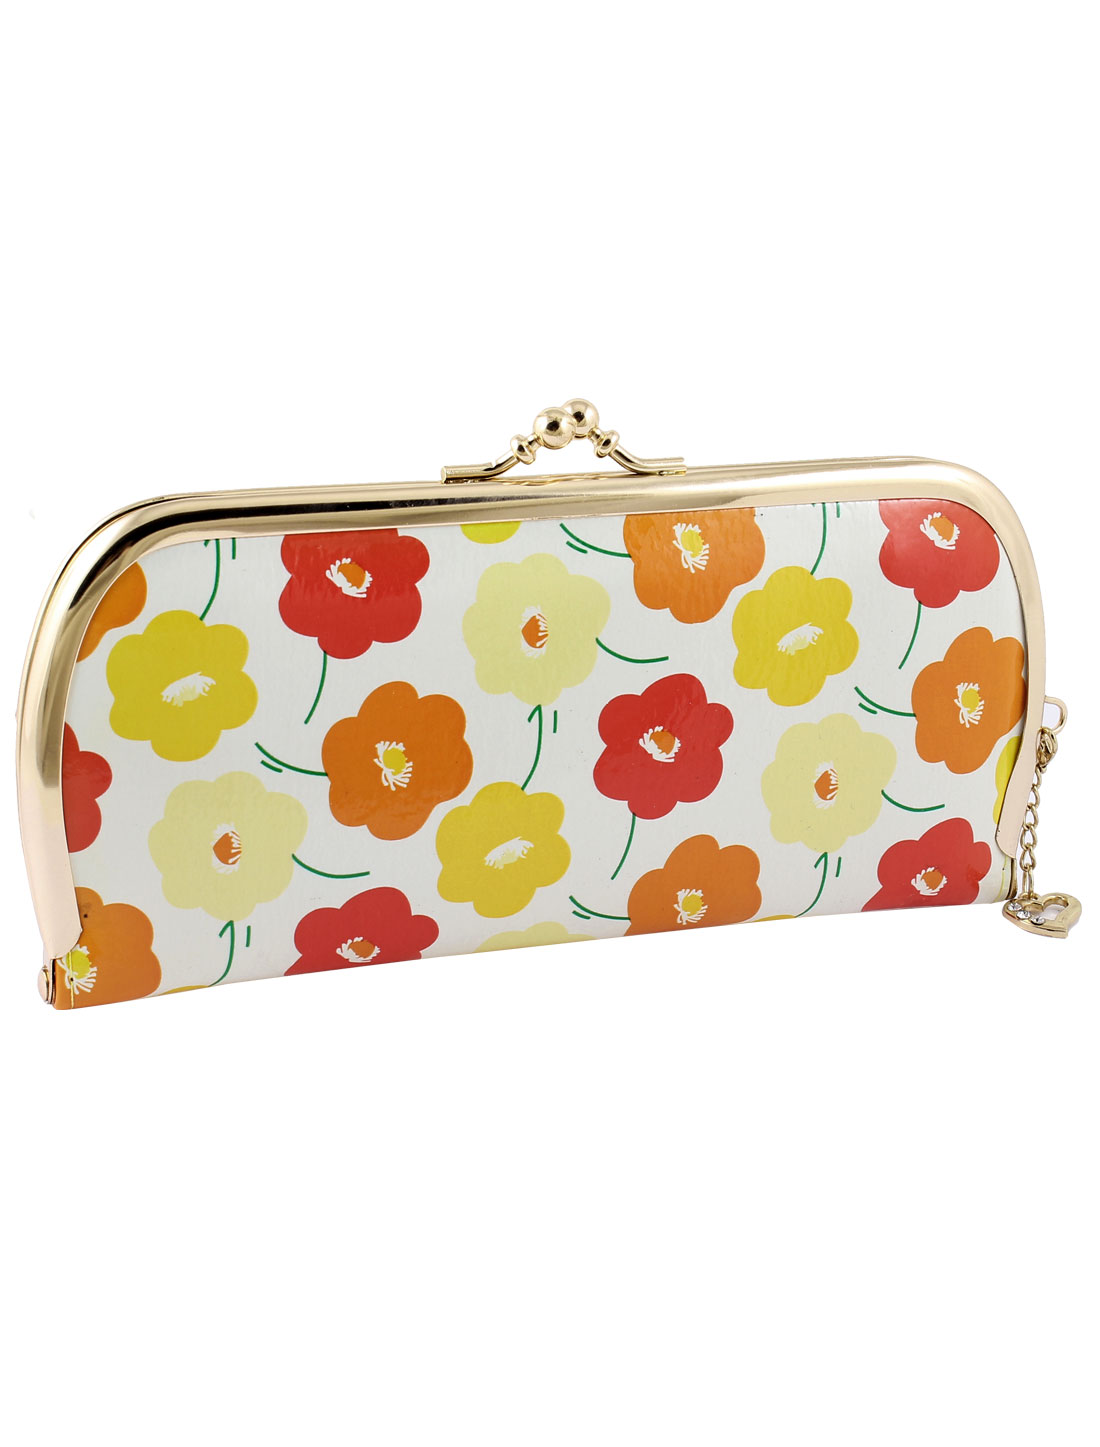 Red Ornage Yellow Flowers Pattern Kisslock Closure Faux Leather Purse for Woman